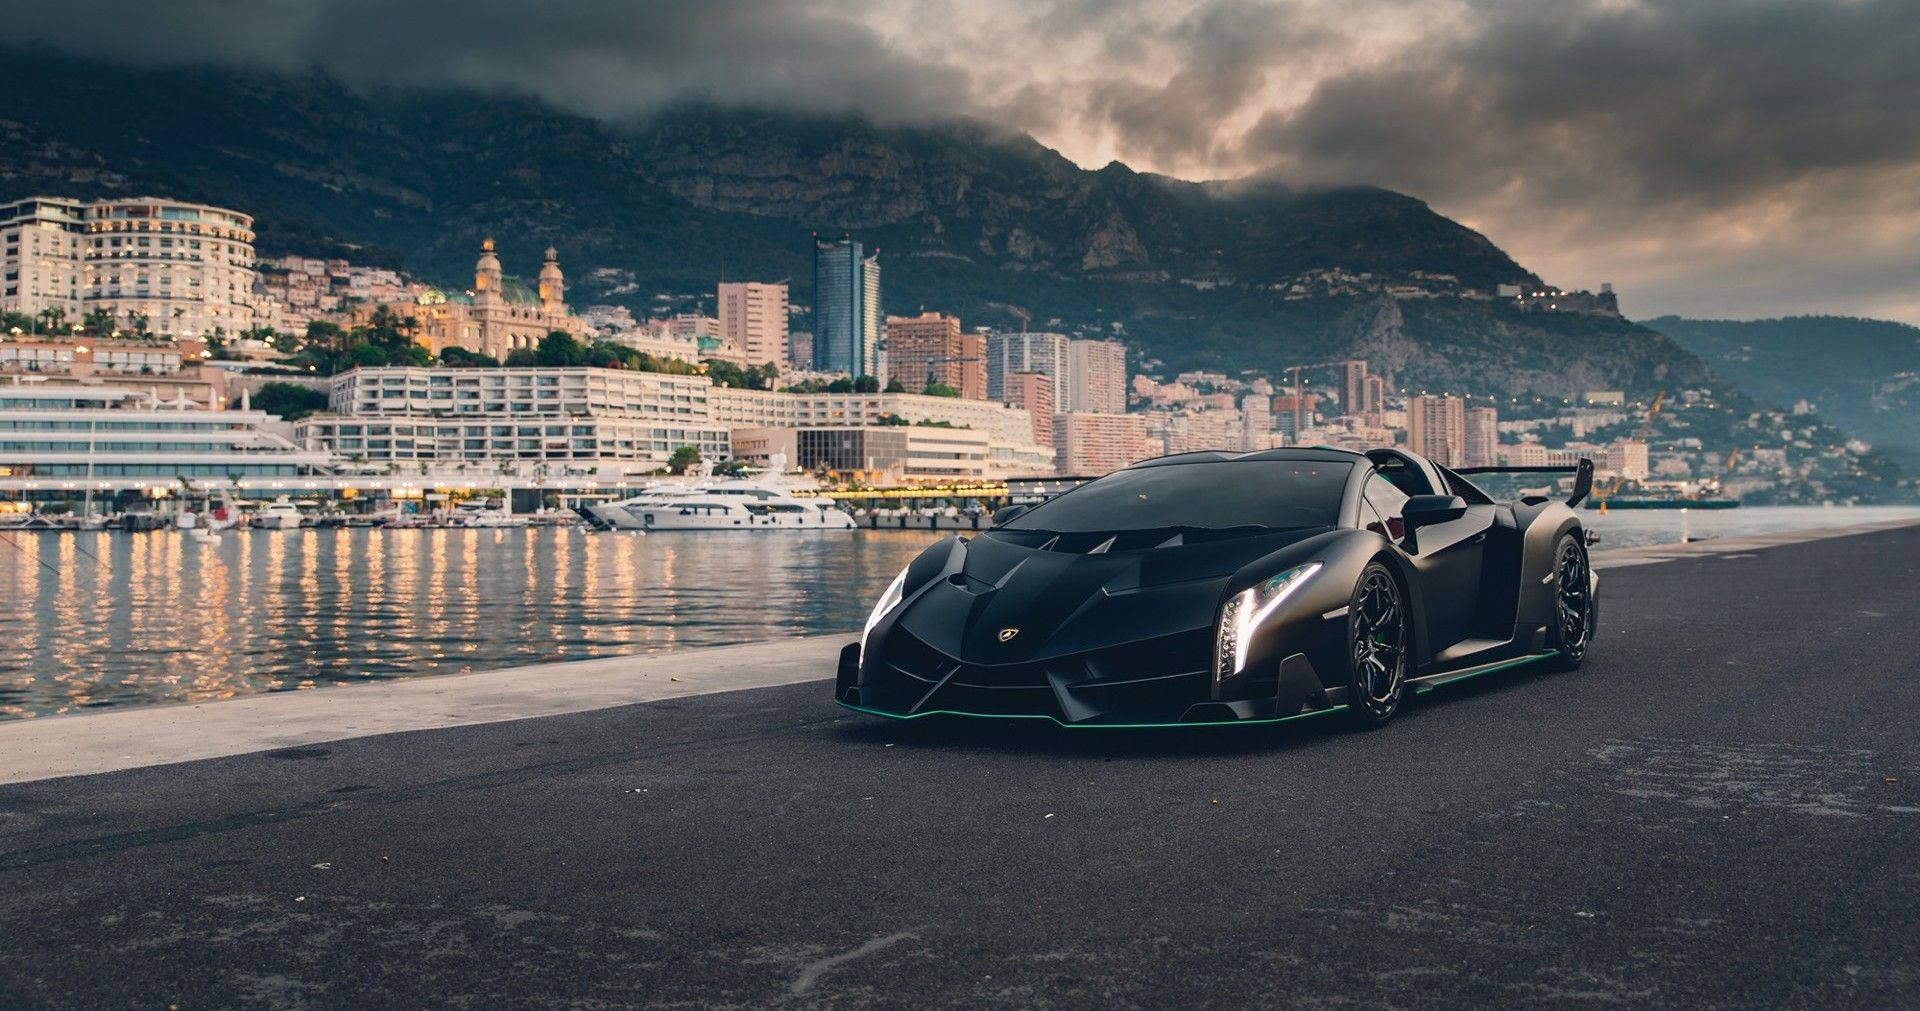 This Is The Sickest Lamborghini Convertible We've Ever Found